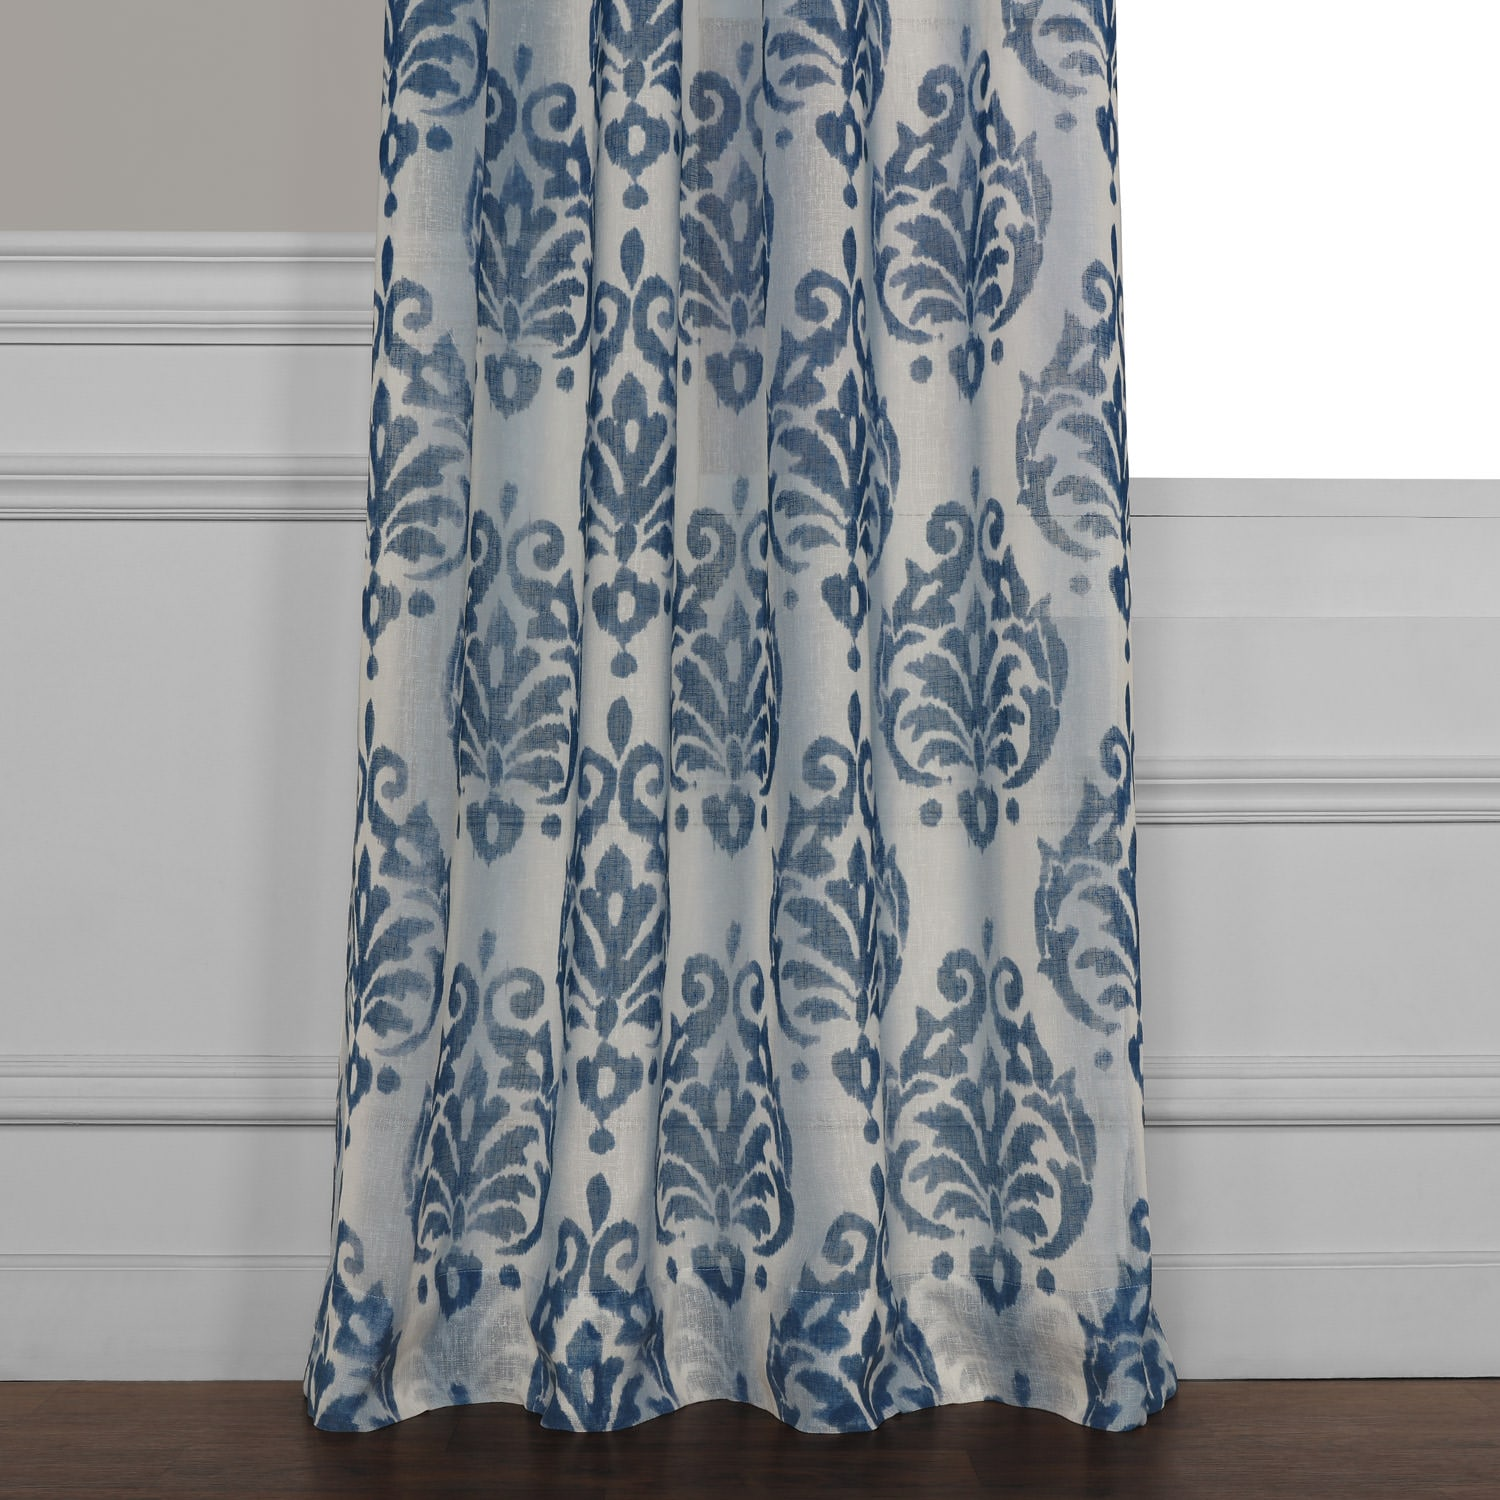 Fresco Blue Printed Faux Linen Sheer Curtain